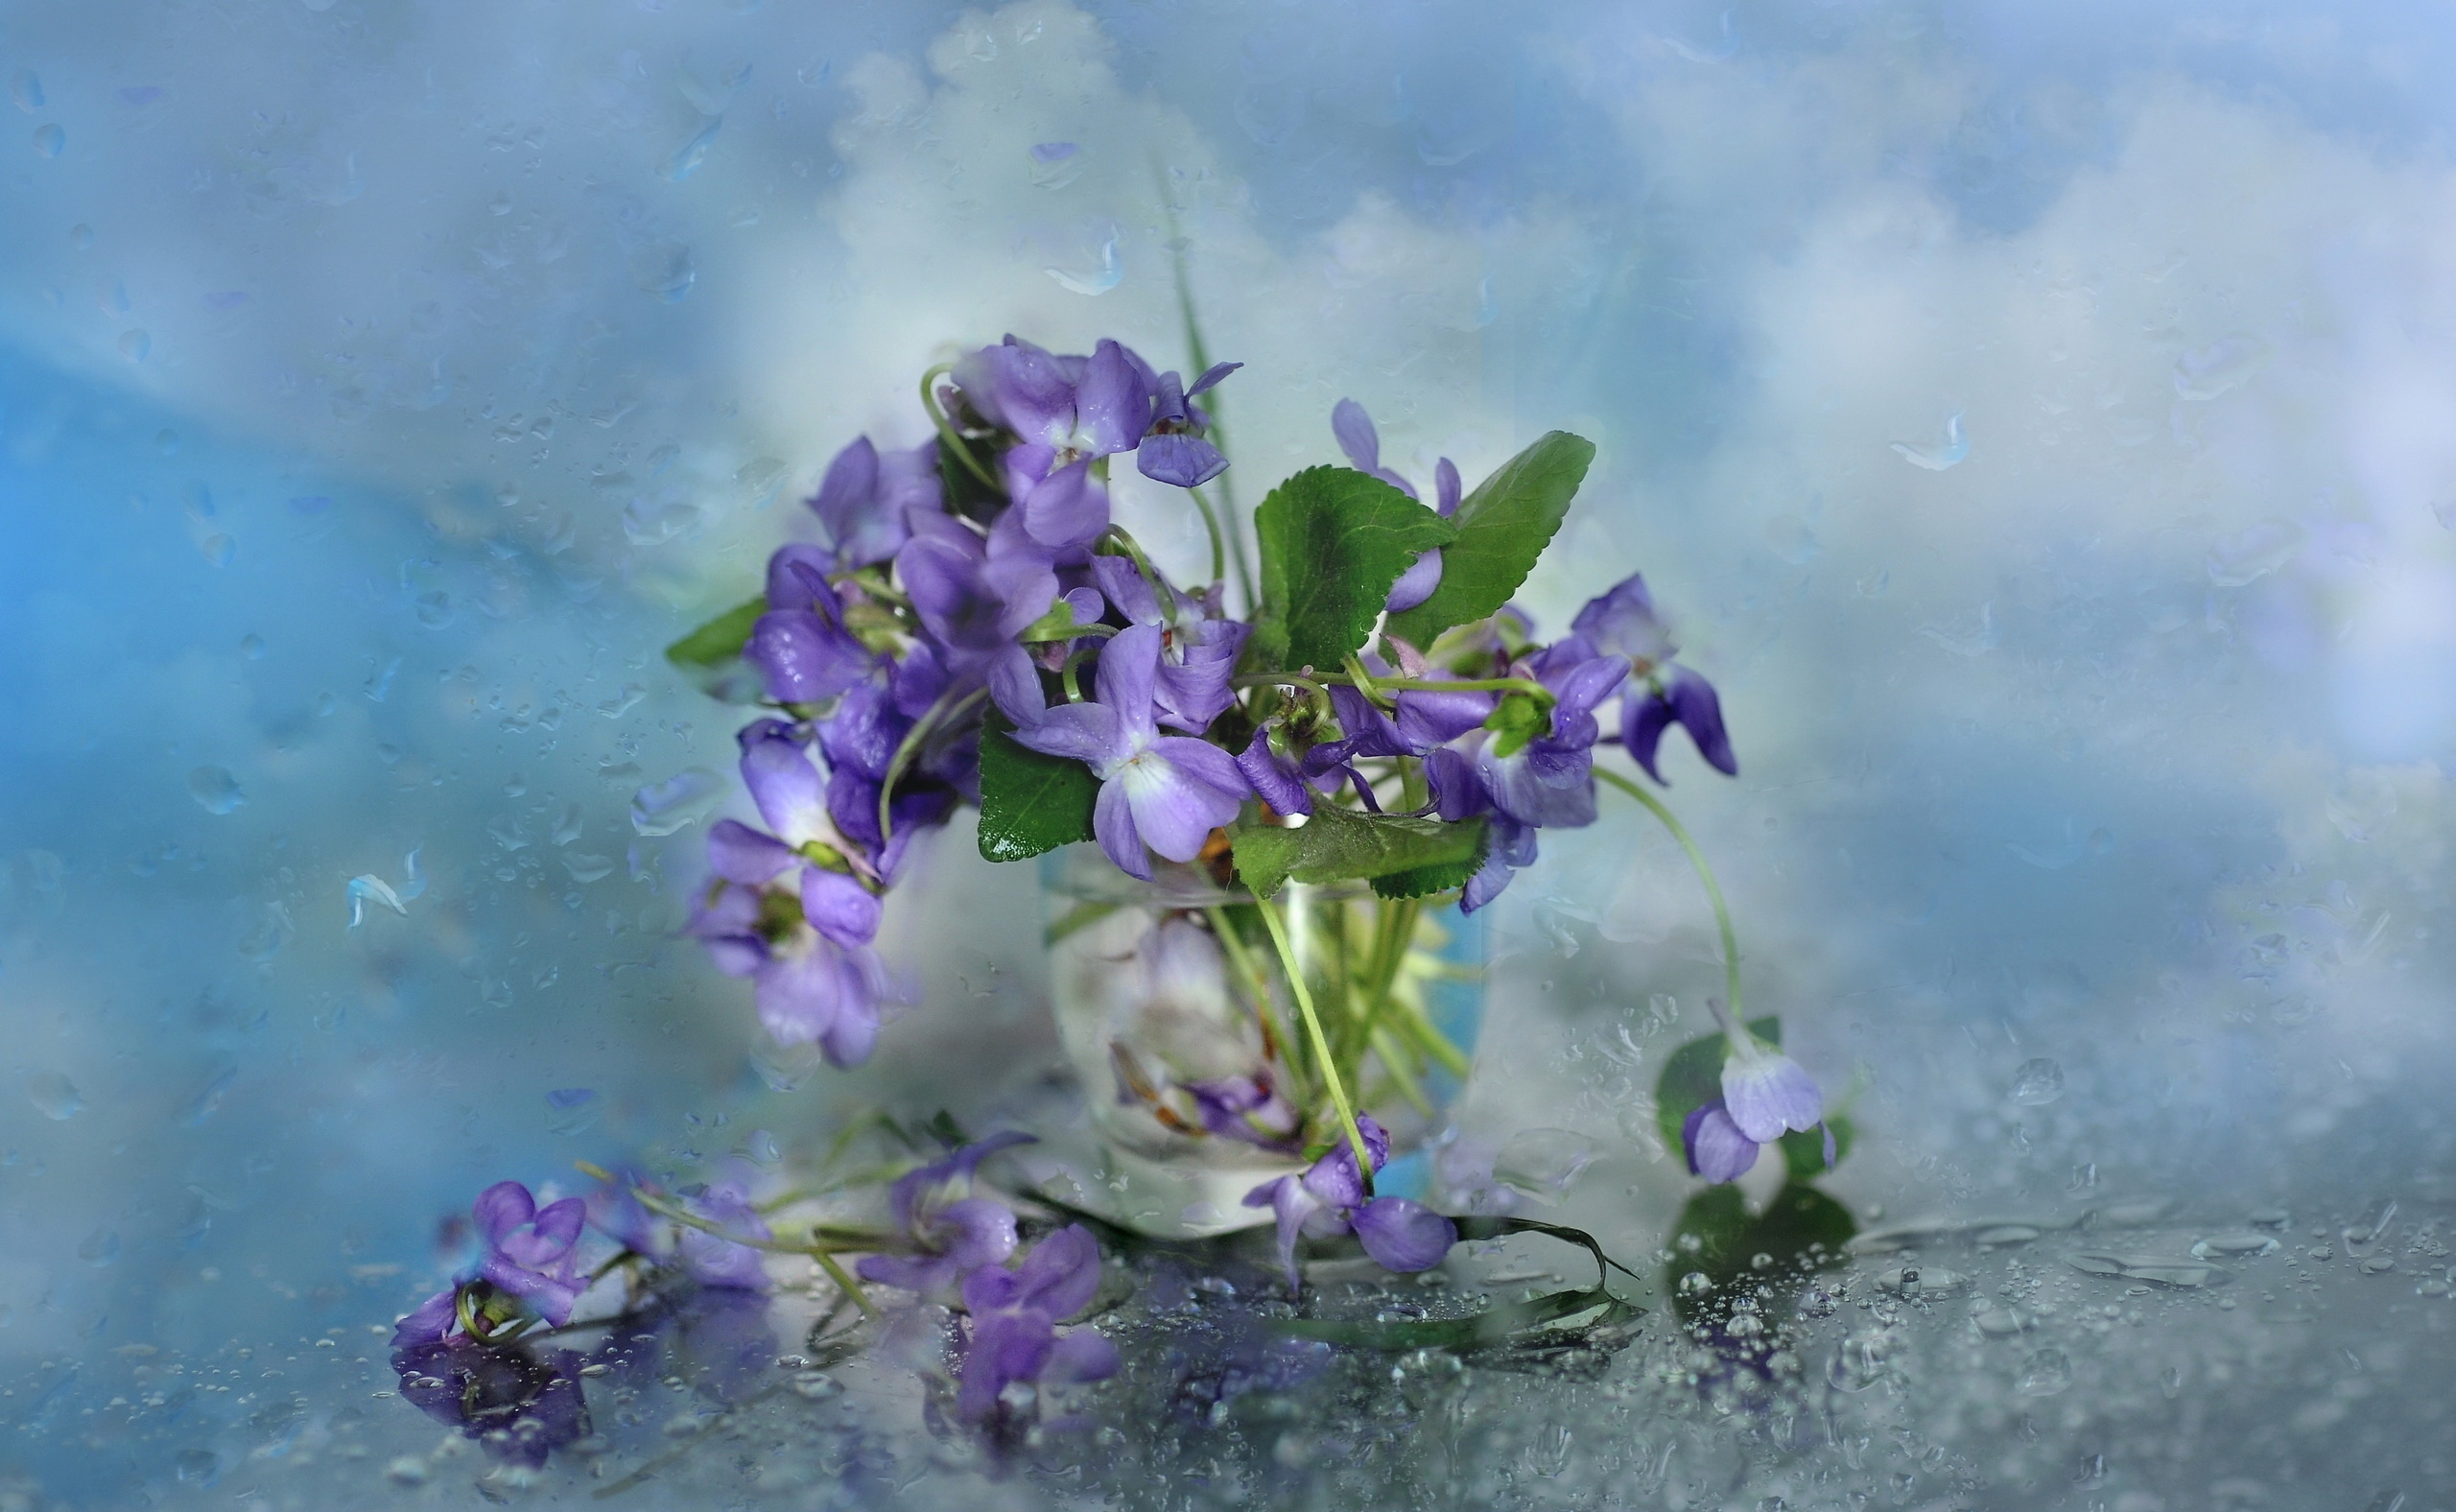 84 Still Life Hd Wallpapers Background Images Wallpaper Abyss